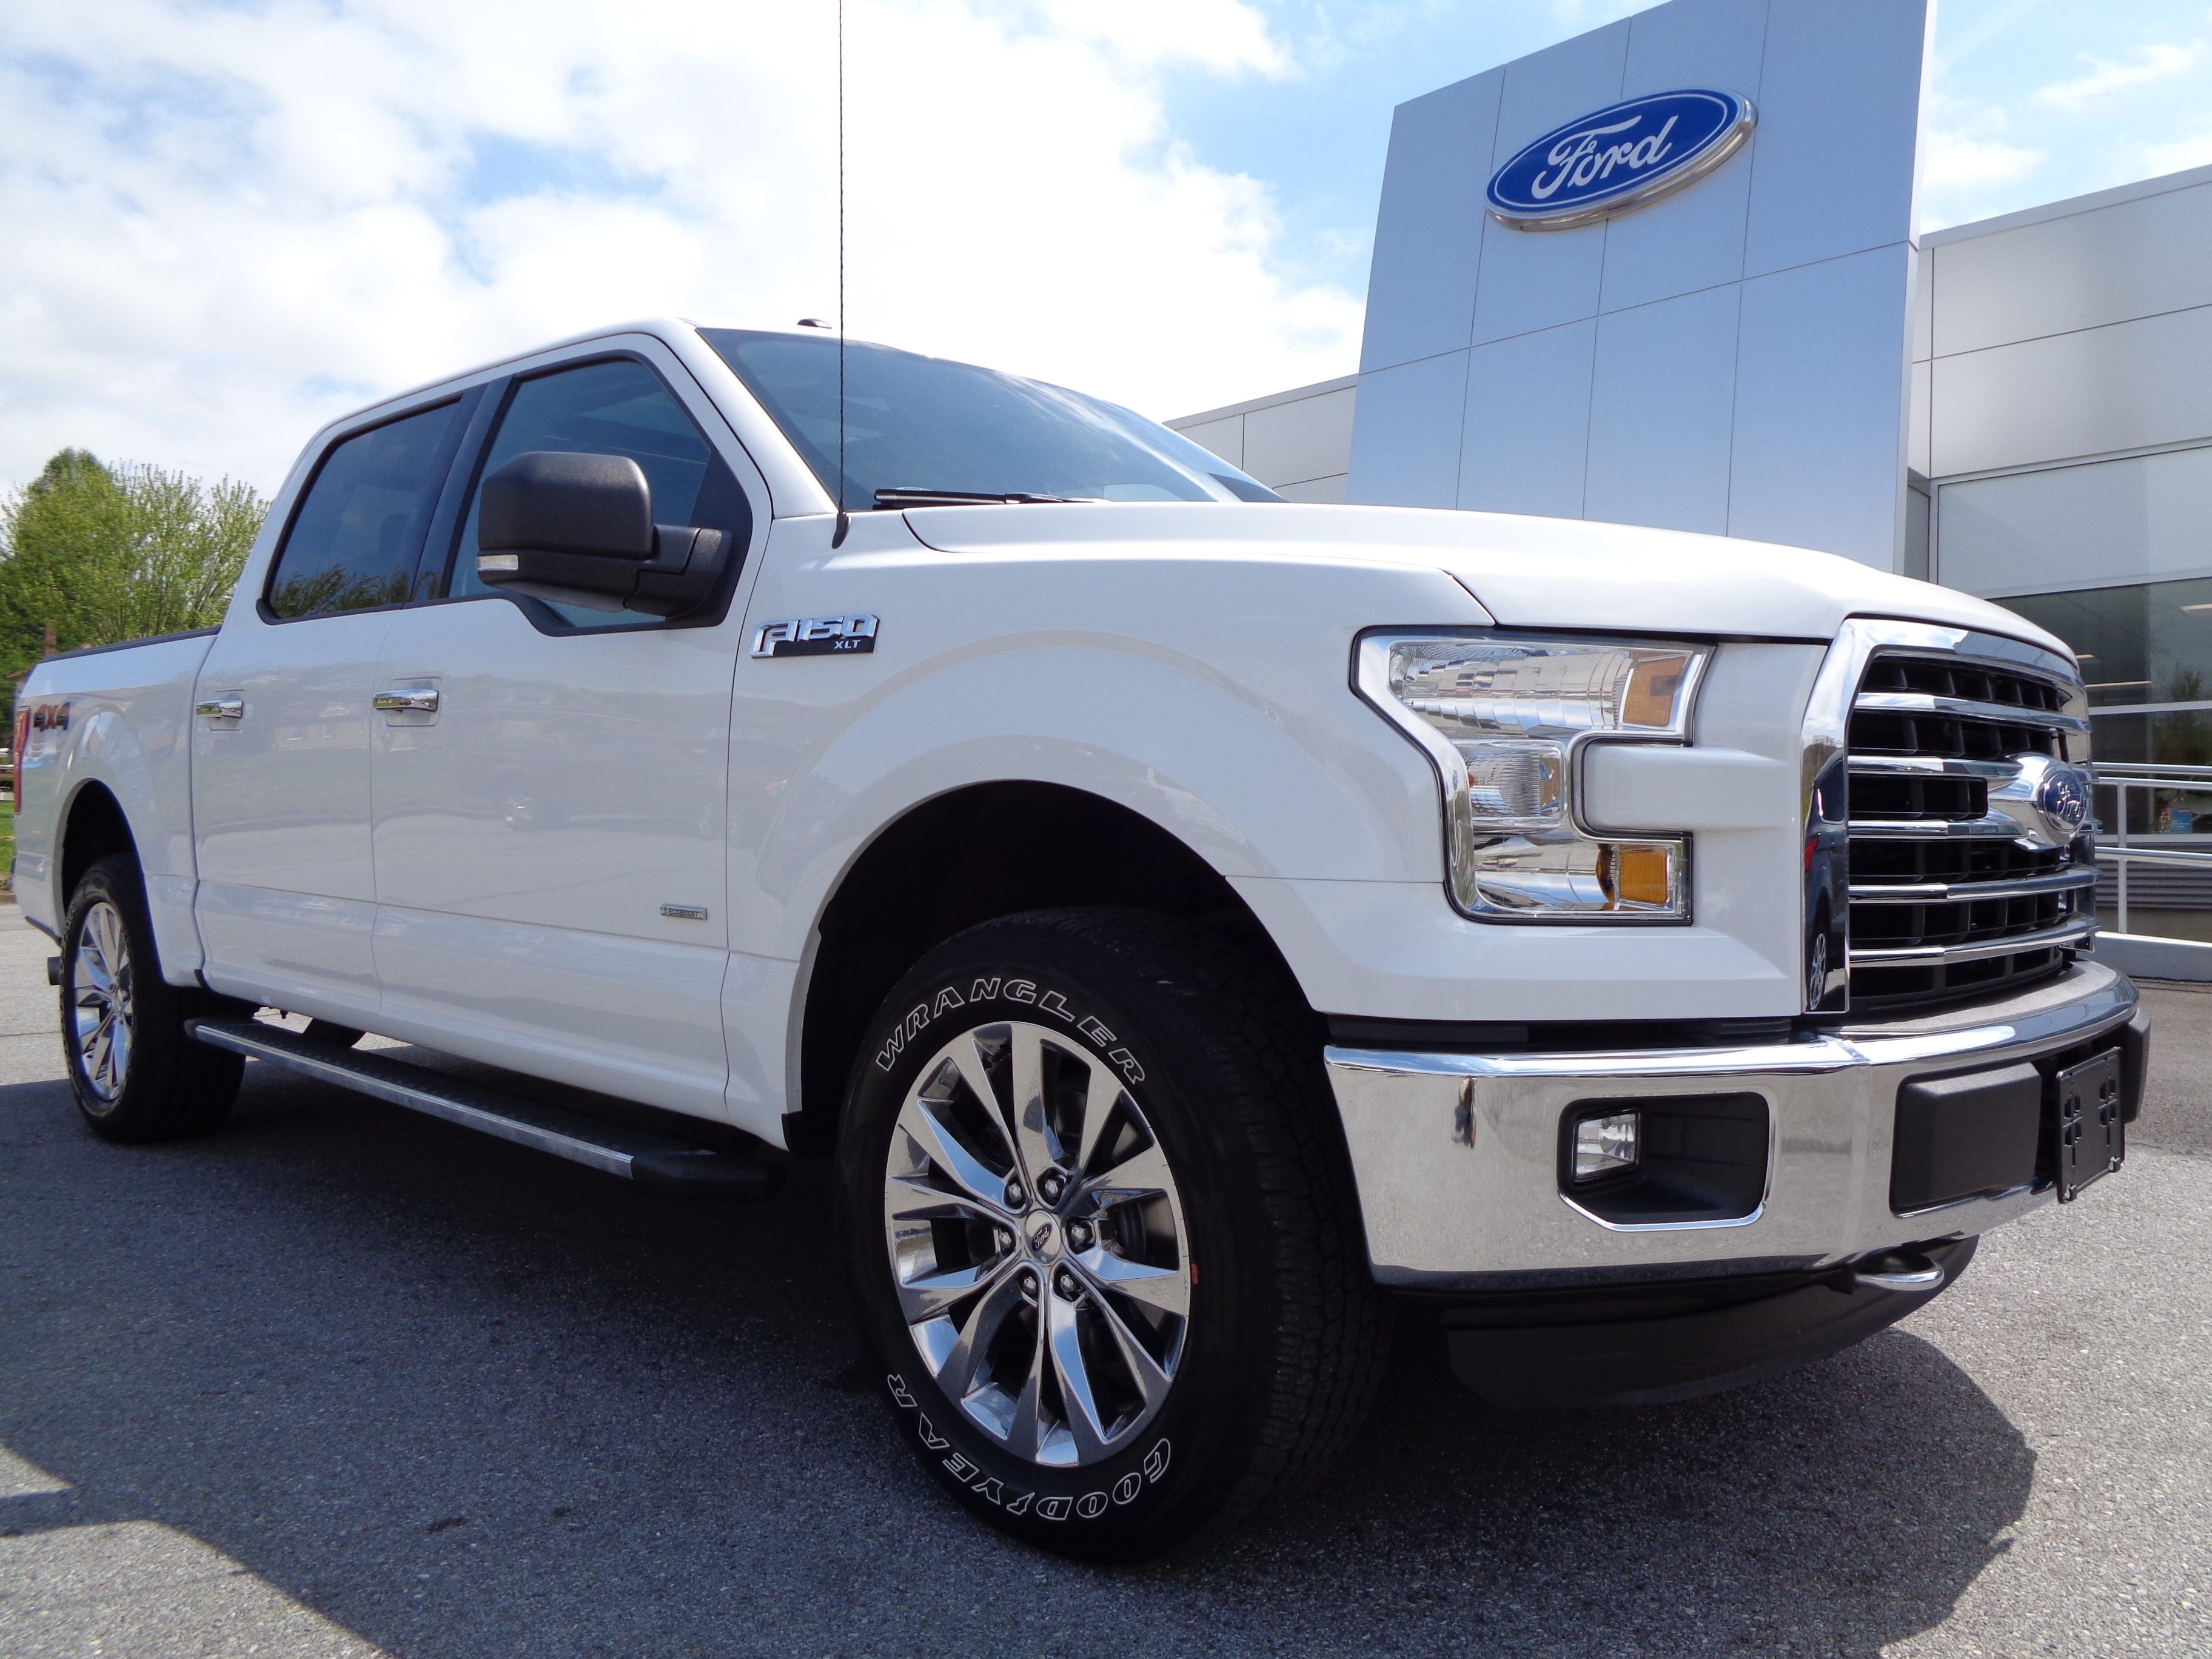 2016 Ford F150 Supercrew XLT 2.7L 4x4 302A Package PICKUP